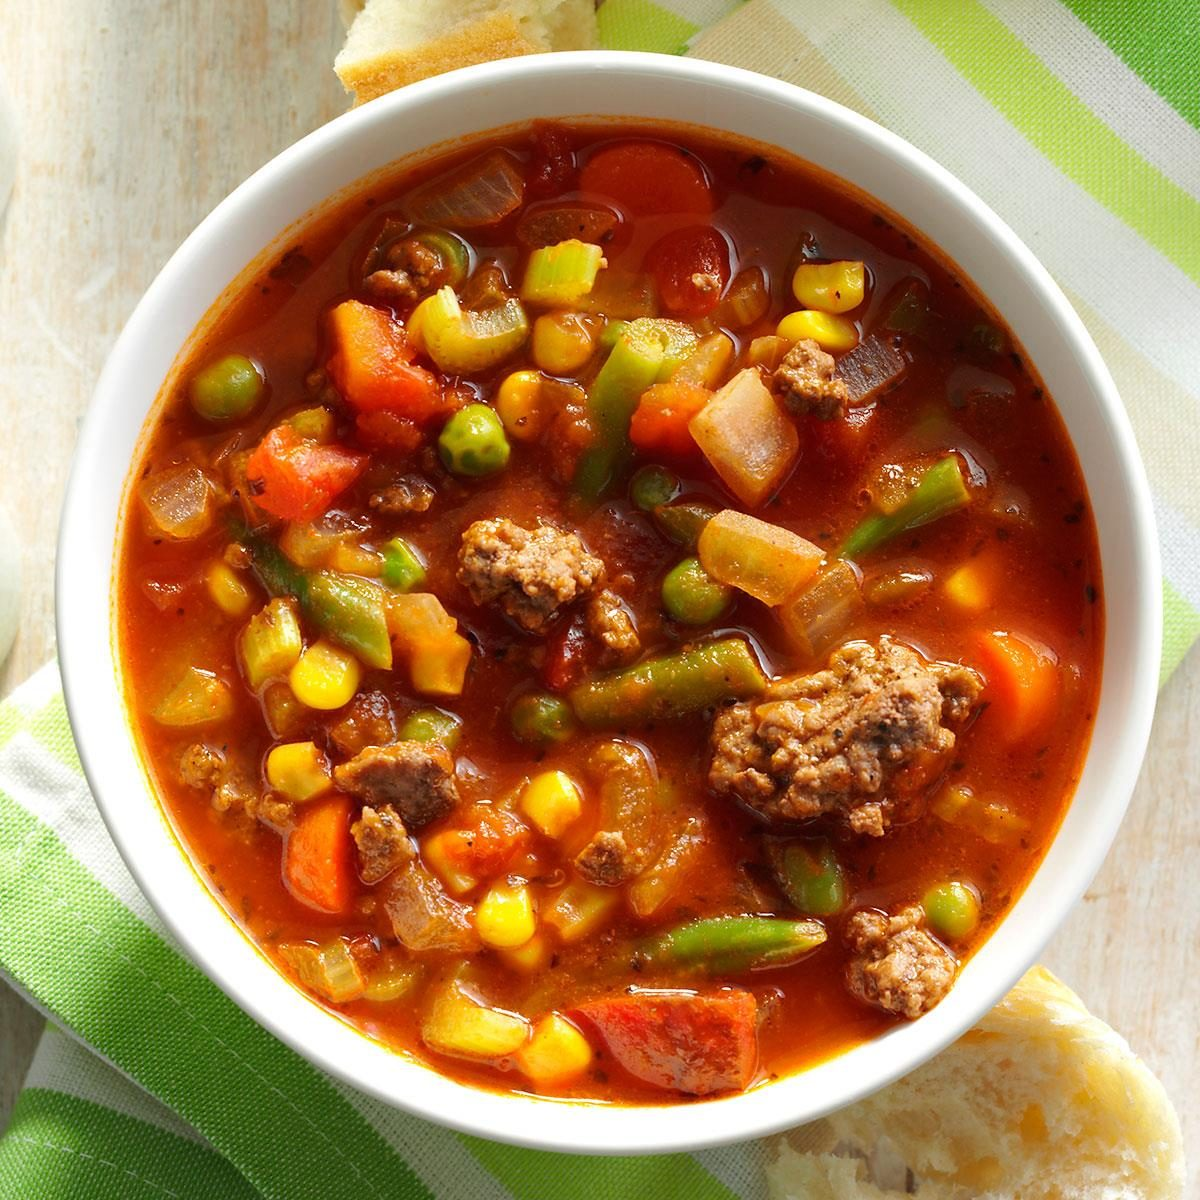 Spicy Beef Vegetable Stew Recipe | Taste of Home